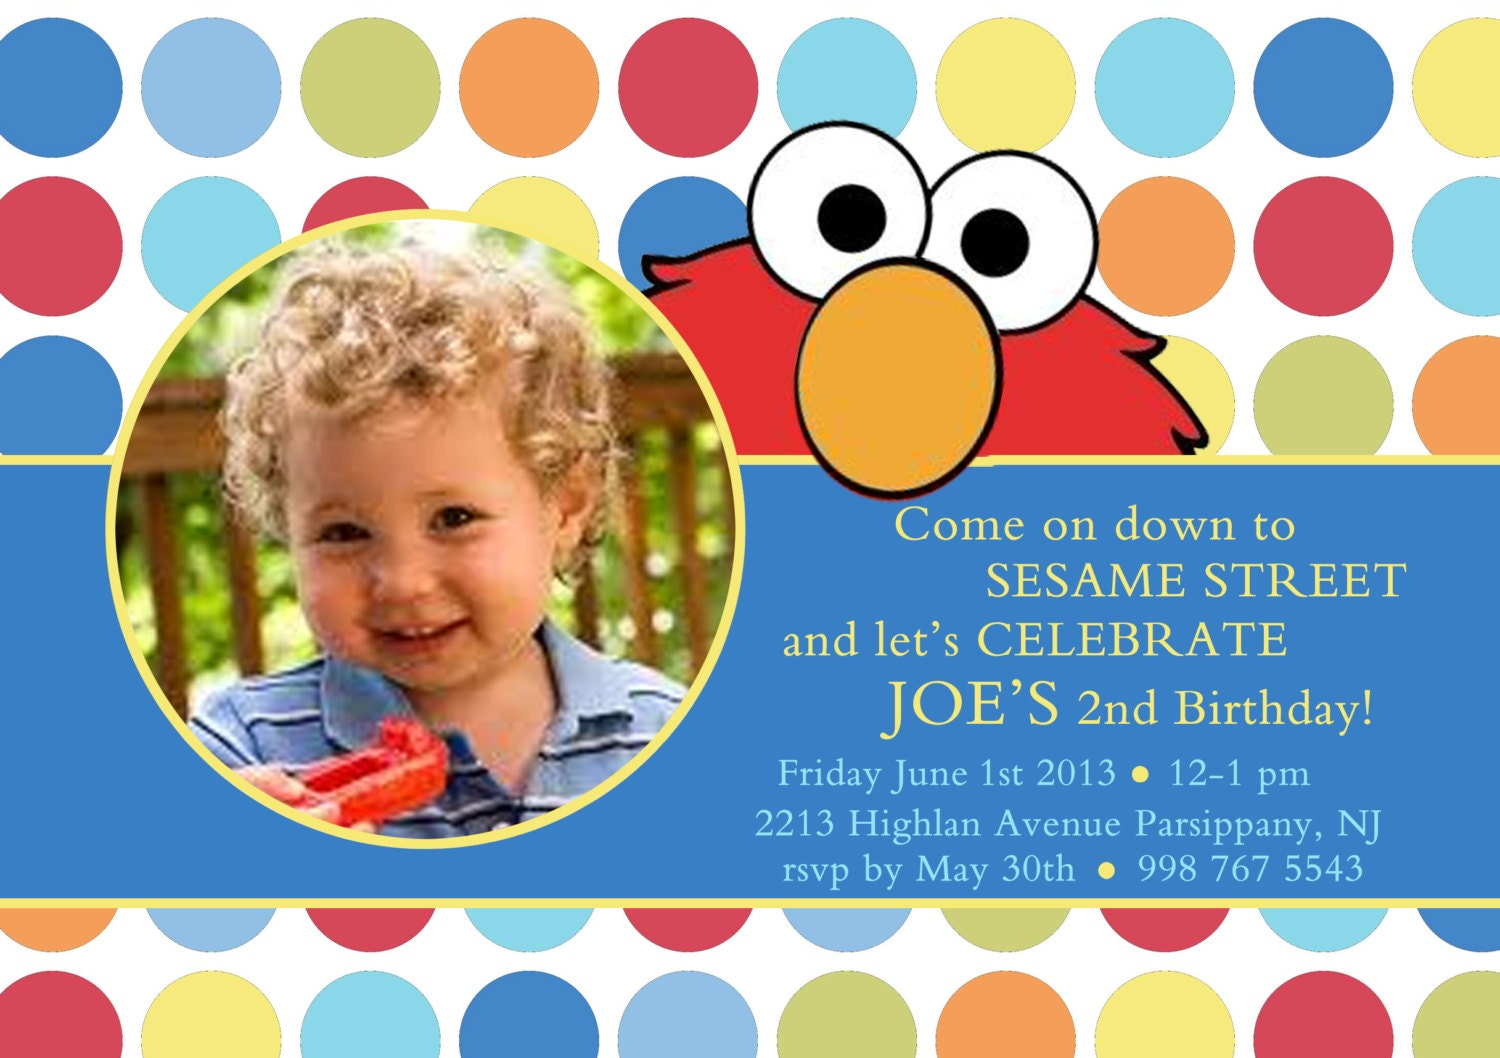 personalised birthday invitations for kids - Fieldstation.co